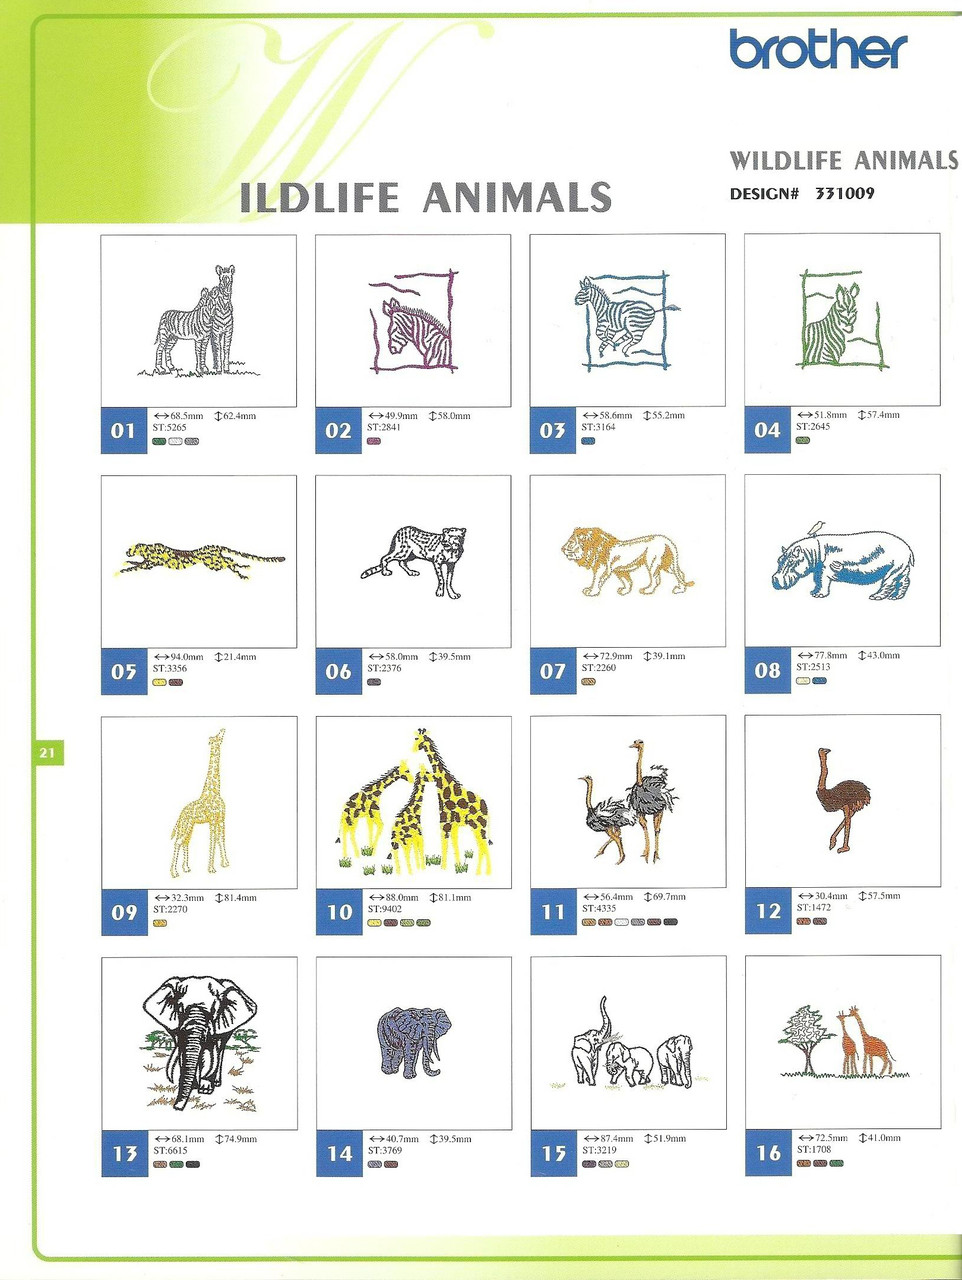 331009 Wildlife Animals